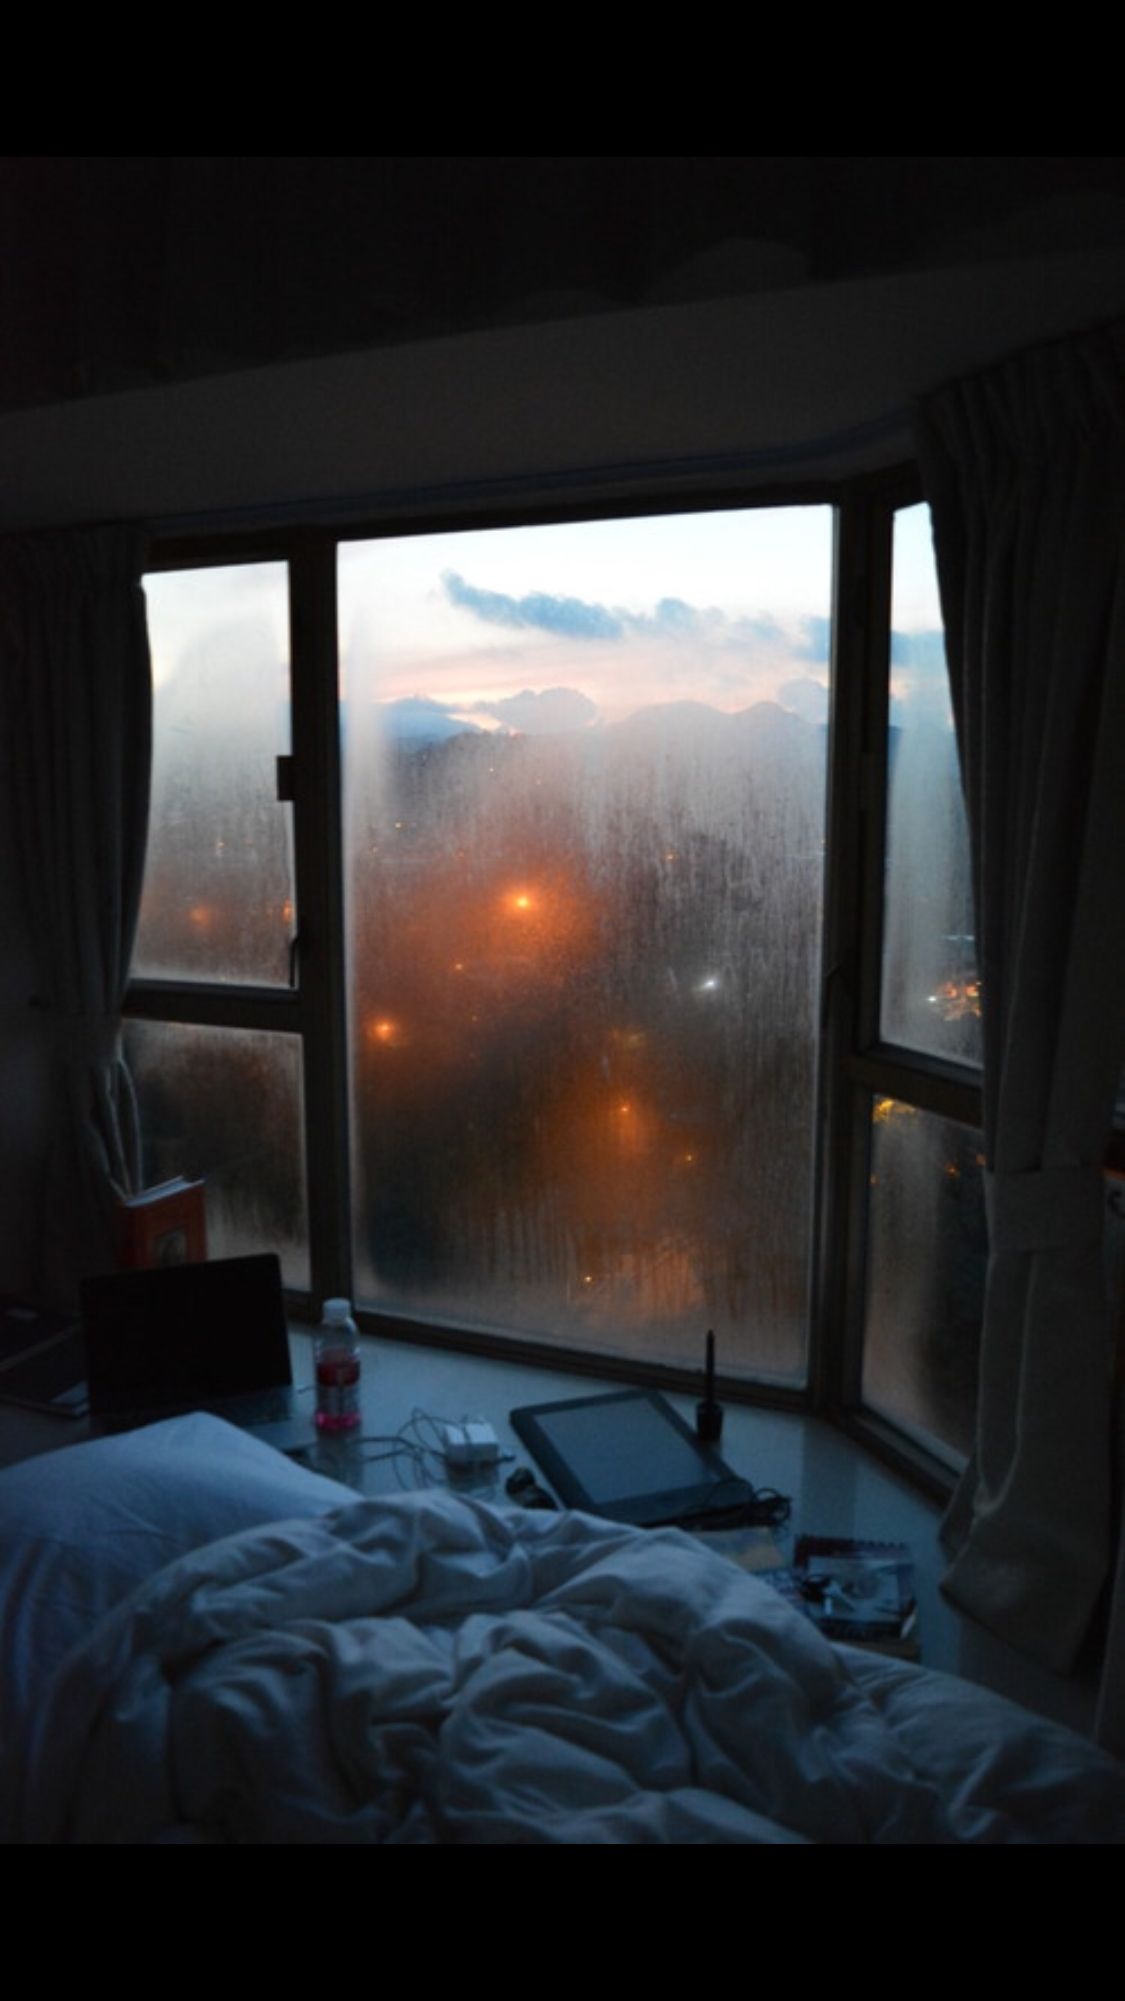 Rainy aesthetic beauty inspo pinterest autumn for Windows for cold climates